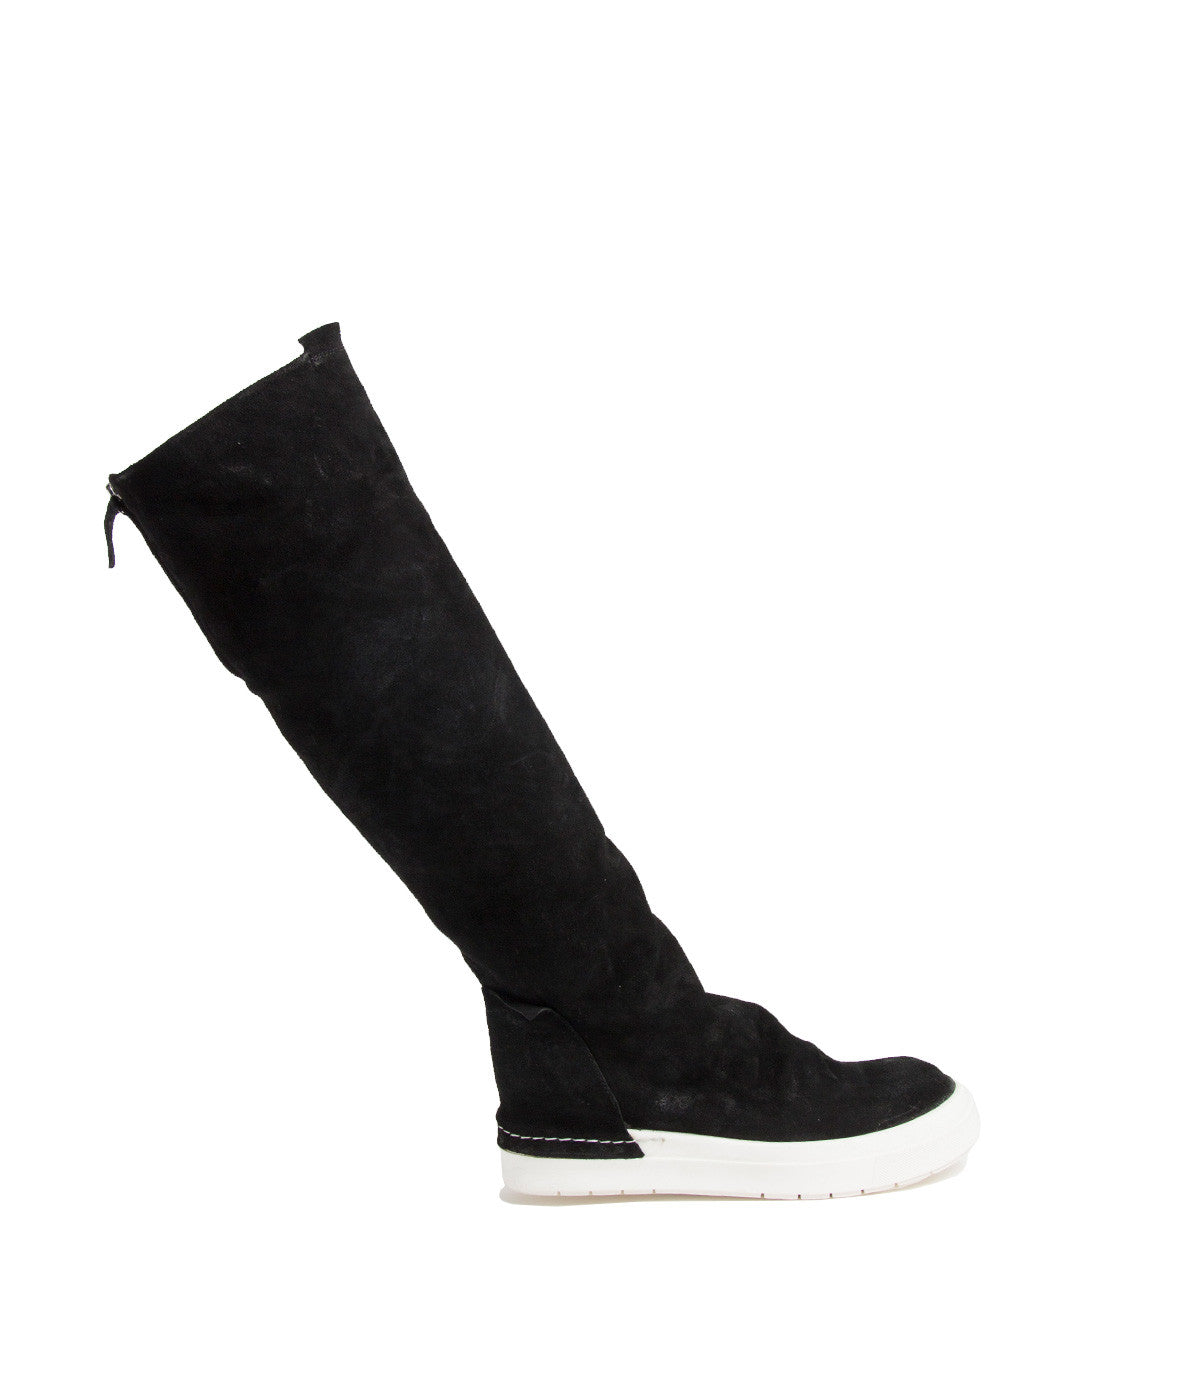 Black Suede Thigh Length Sneaker Boots